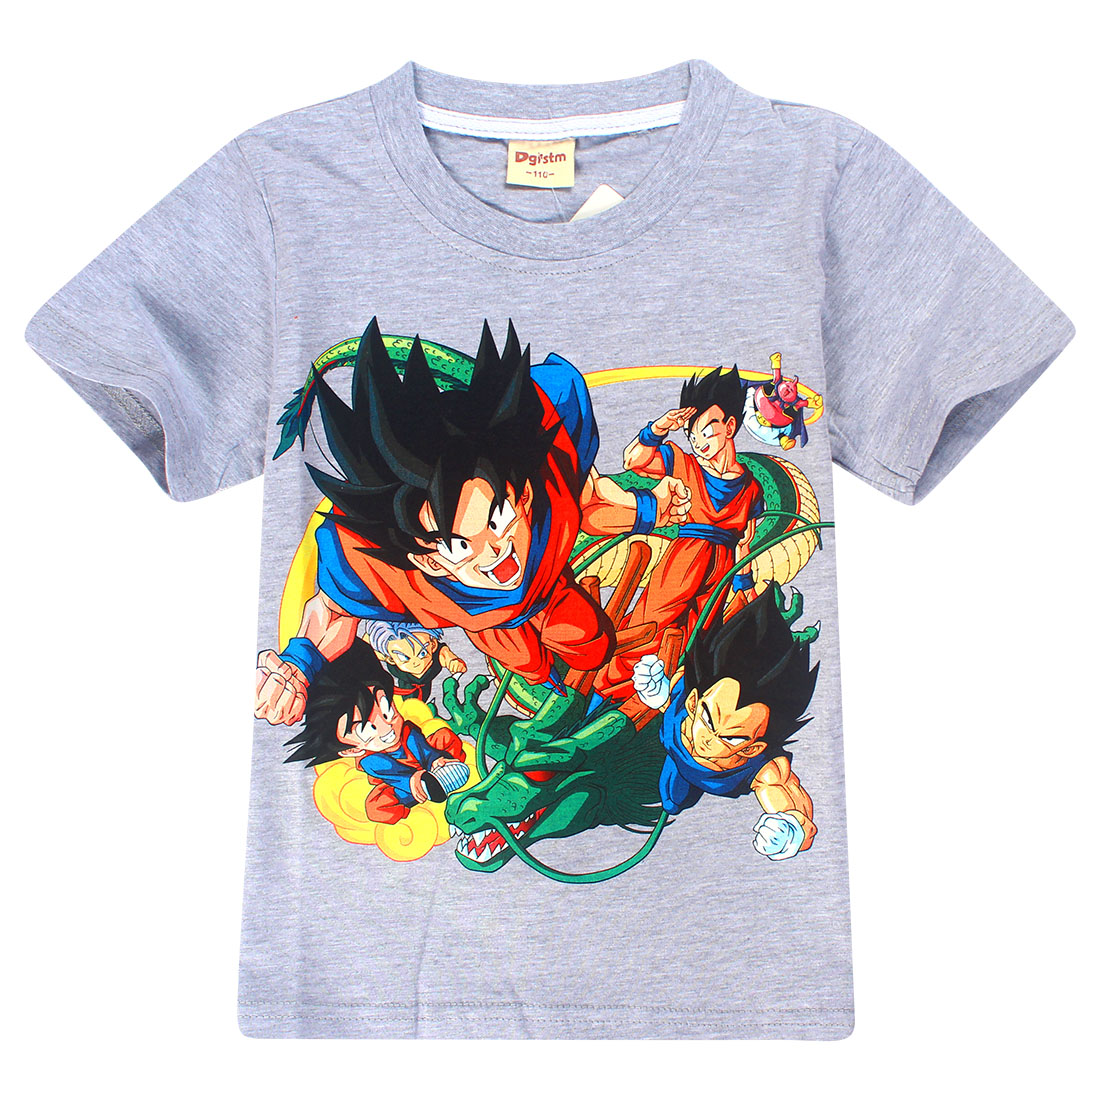 roblox New Children Dragon Ball Toddler Goku Funny T-Shirts Kids outfits Top Boys/Girls Short Sleeve Clothes Anime Baby T shirt